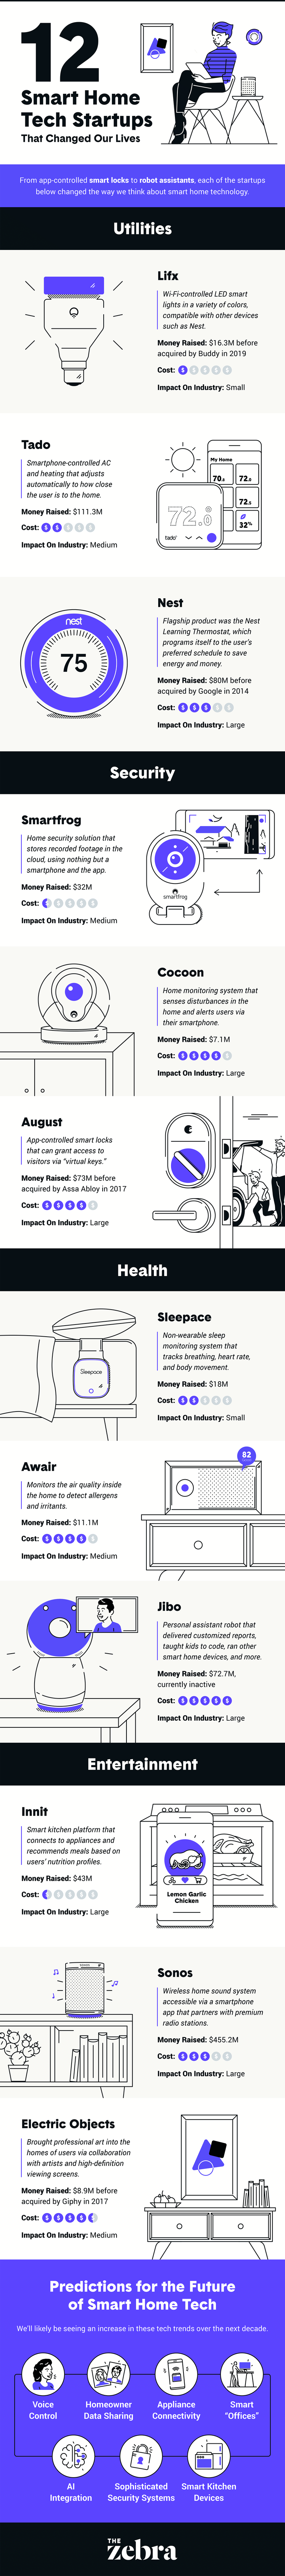 How Smart Home Tech Startups are Making Homes More Intelligent #infographic